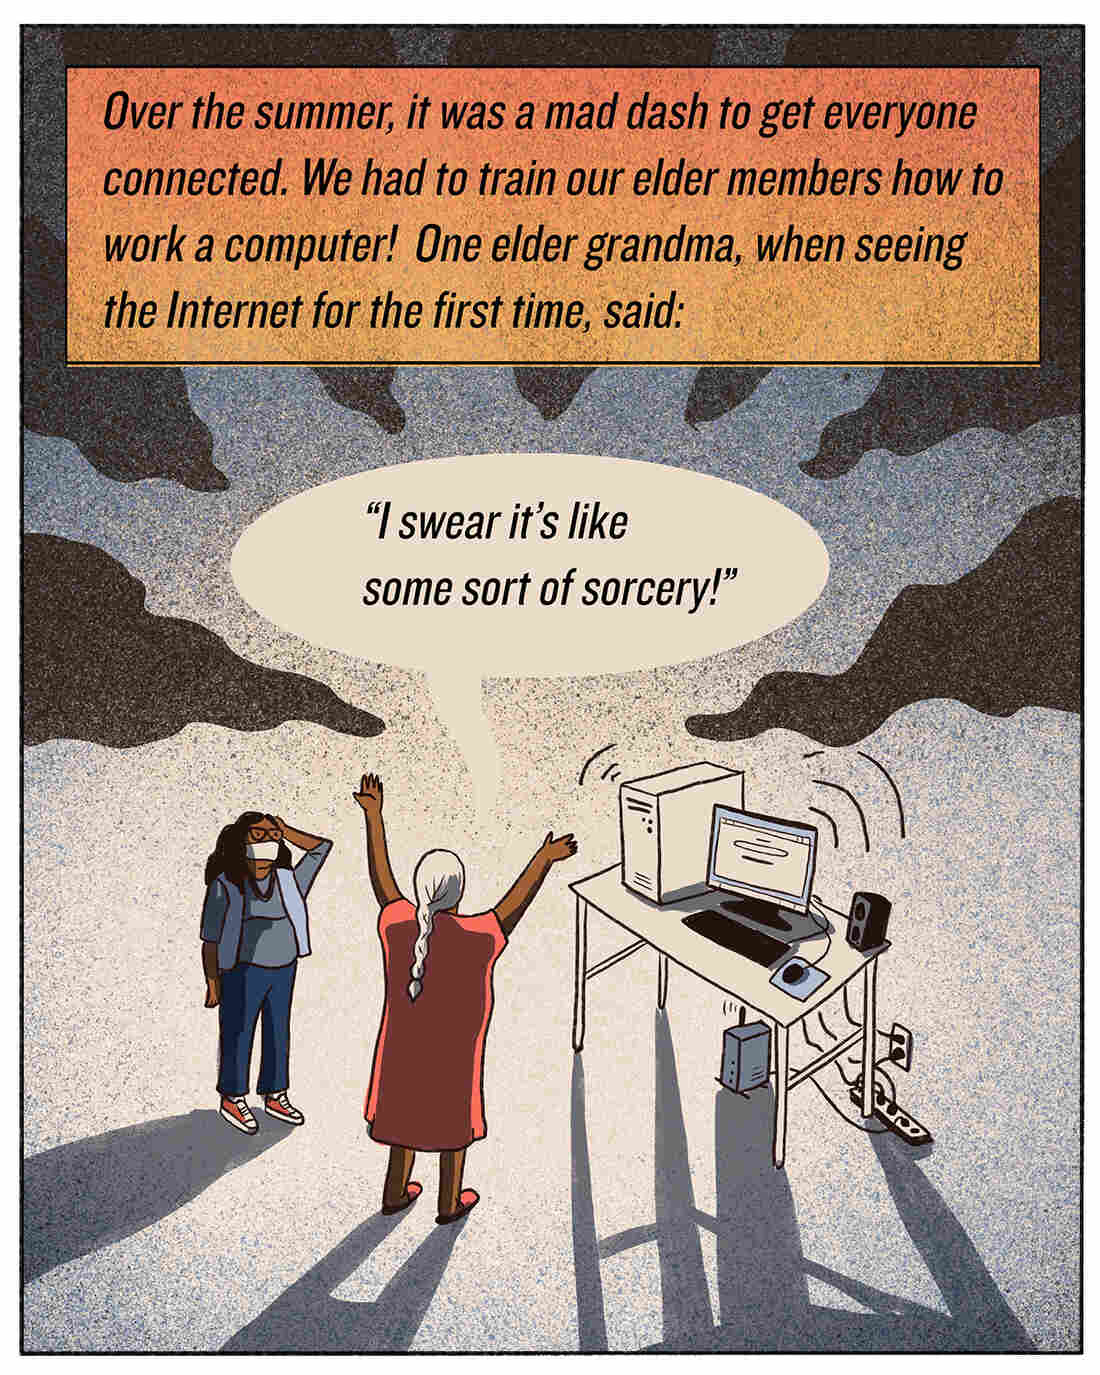 "Over the summer, it was a mad dash to get everyone connected. We had to train our elder members how to work a computer! One elder grandma, when seeing the Internet for the first time, said:  ""I swear it's like some sort of sorcery!"